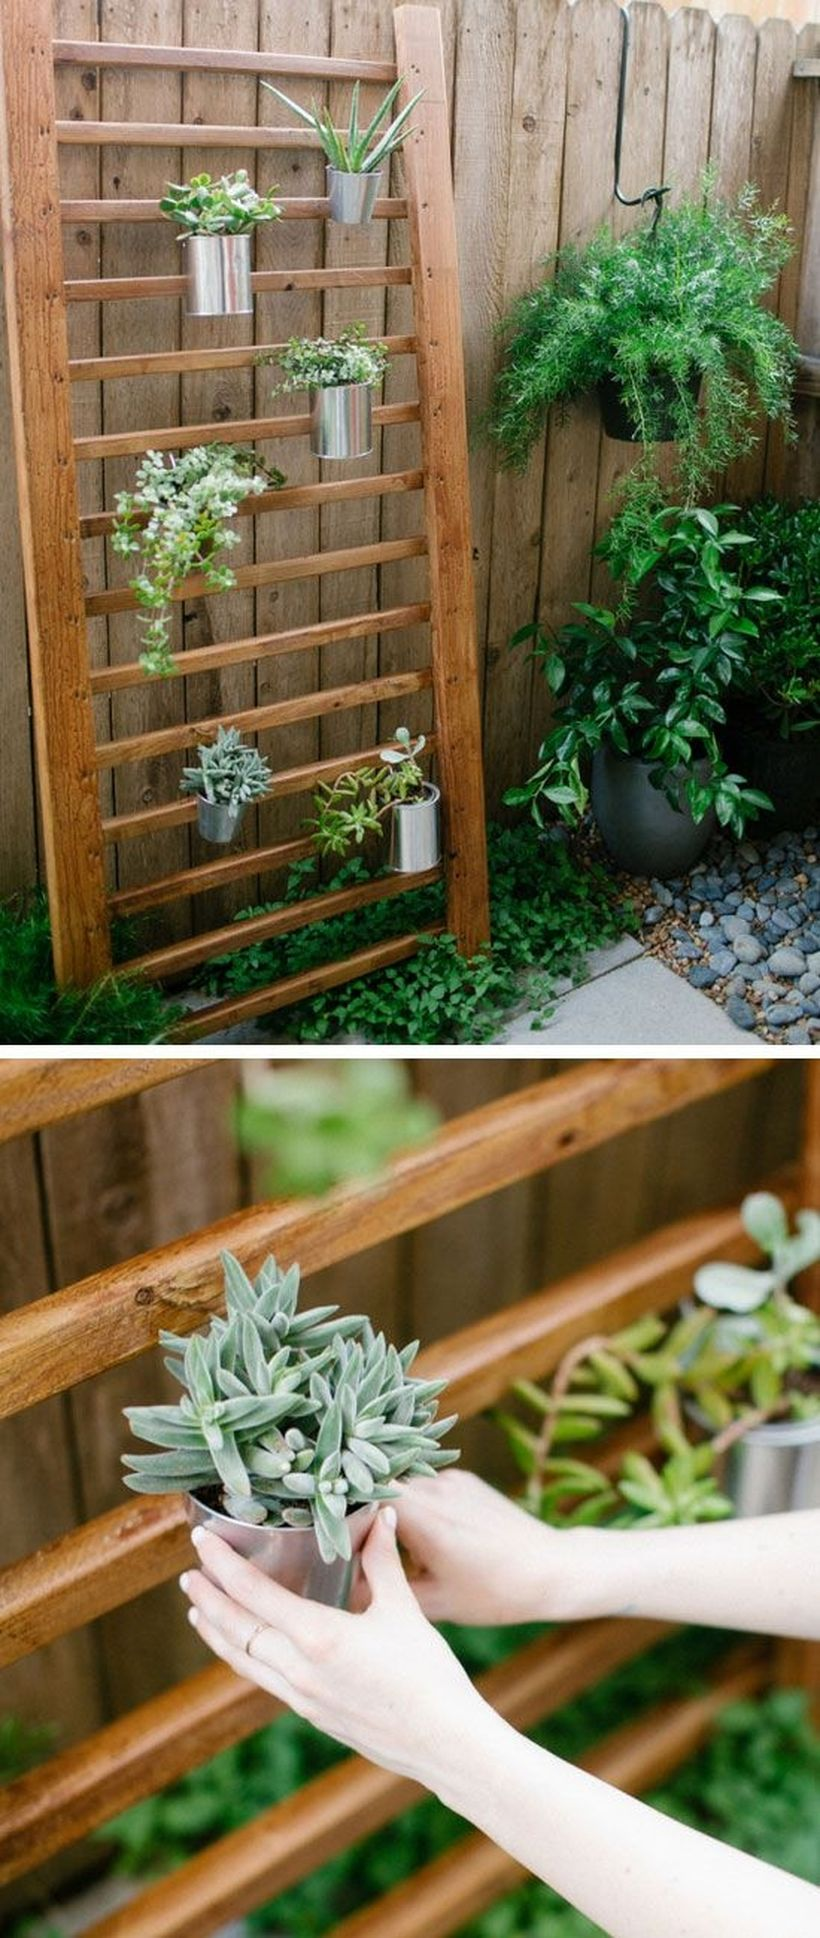 Best backyard ideas on a budget 15 - Hoommy.com on Backyard Landscaping Ideas On A Budget id=97205